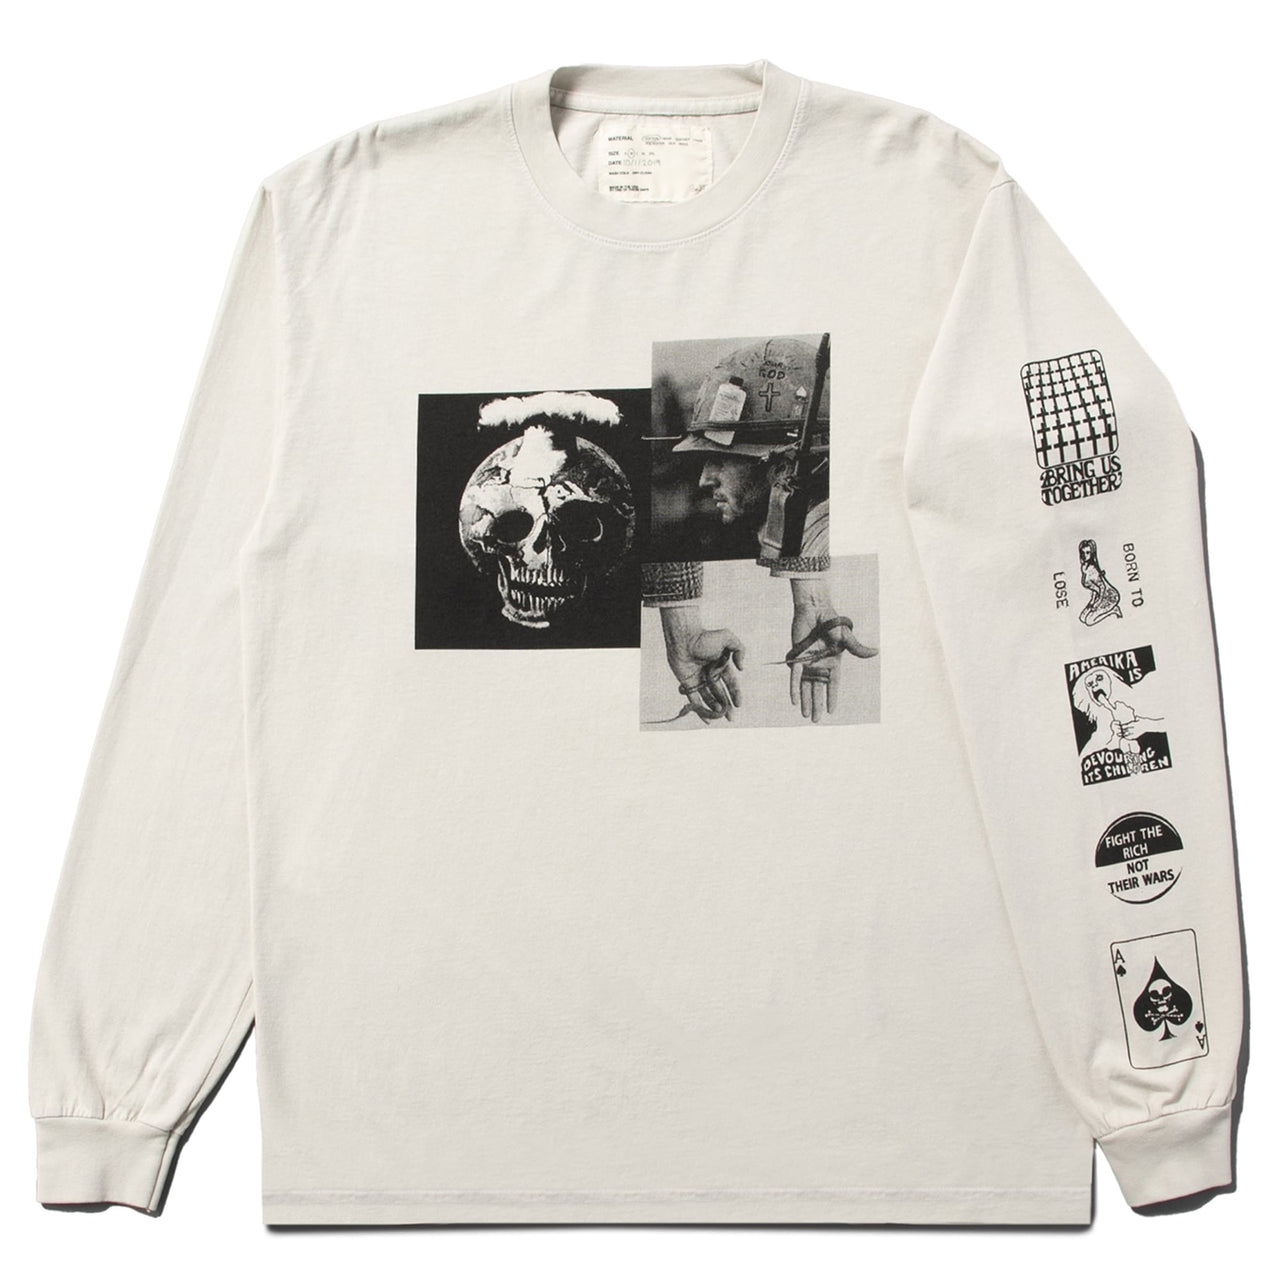 OUR GOD LONGSLEEVE SHIRT